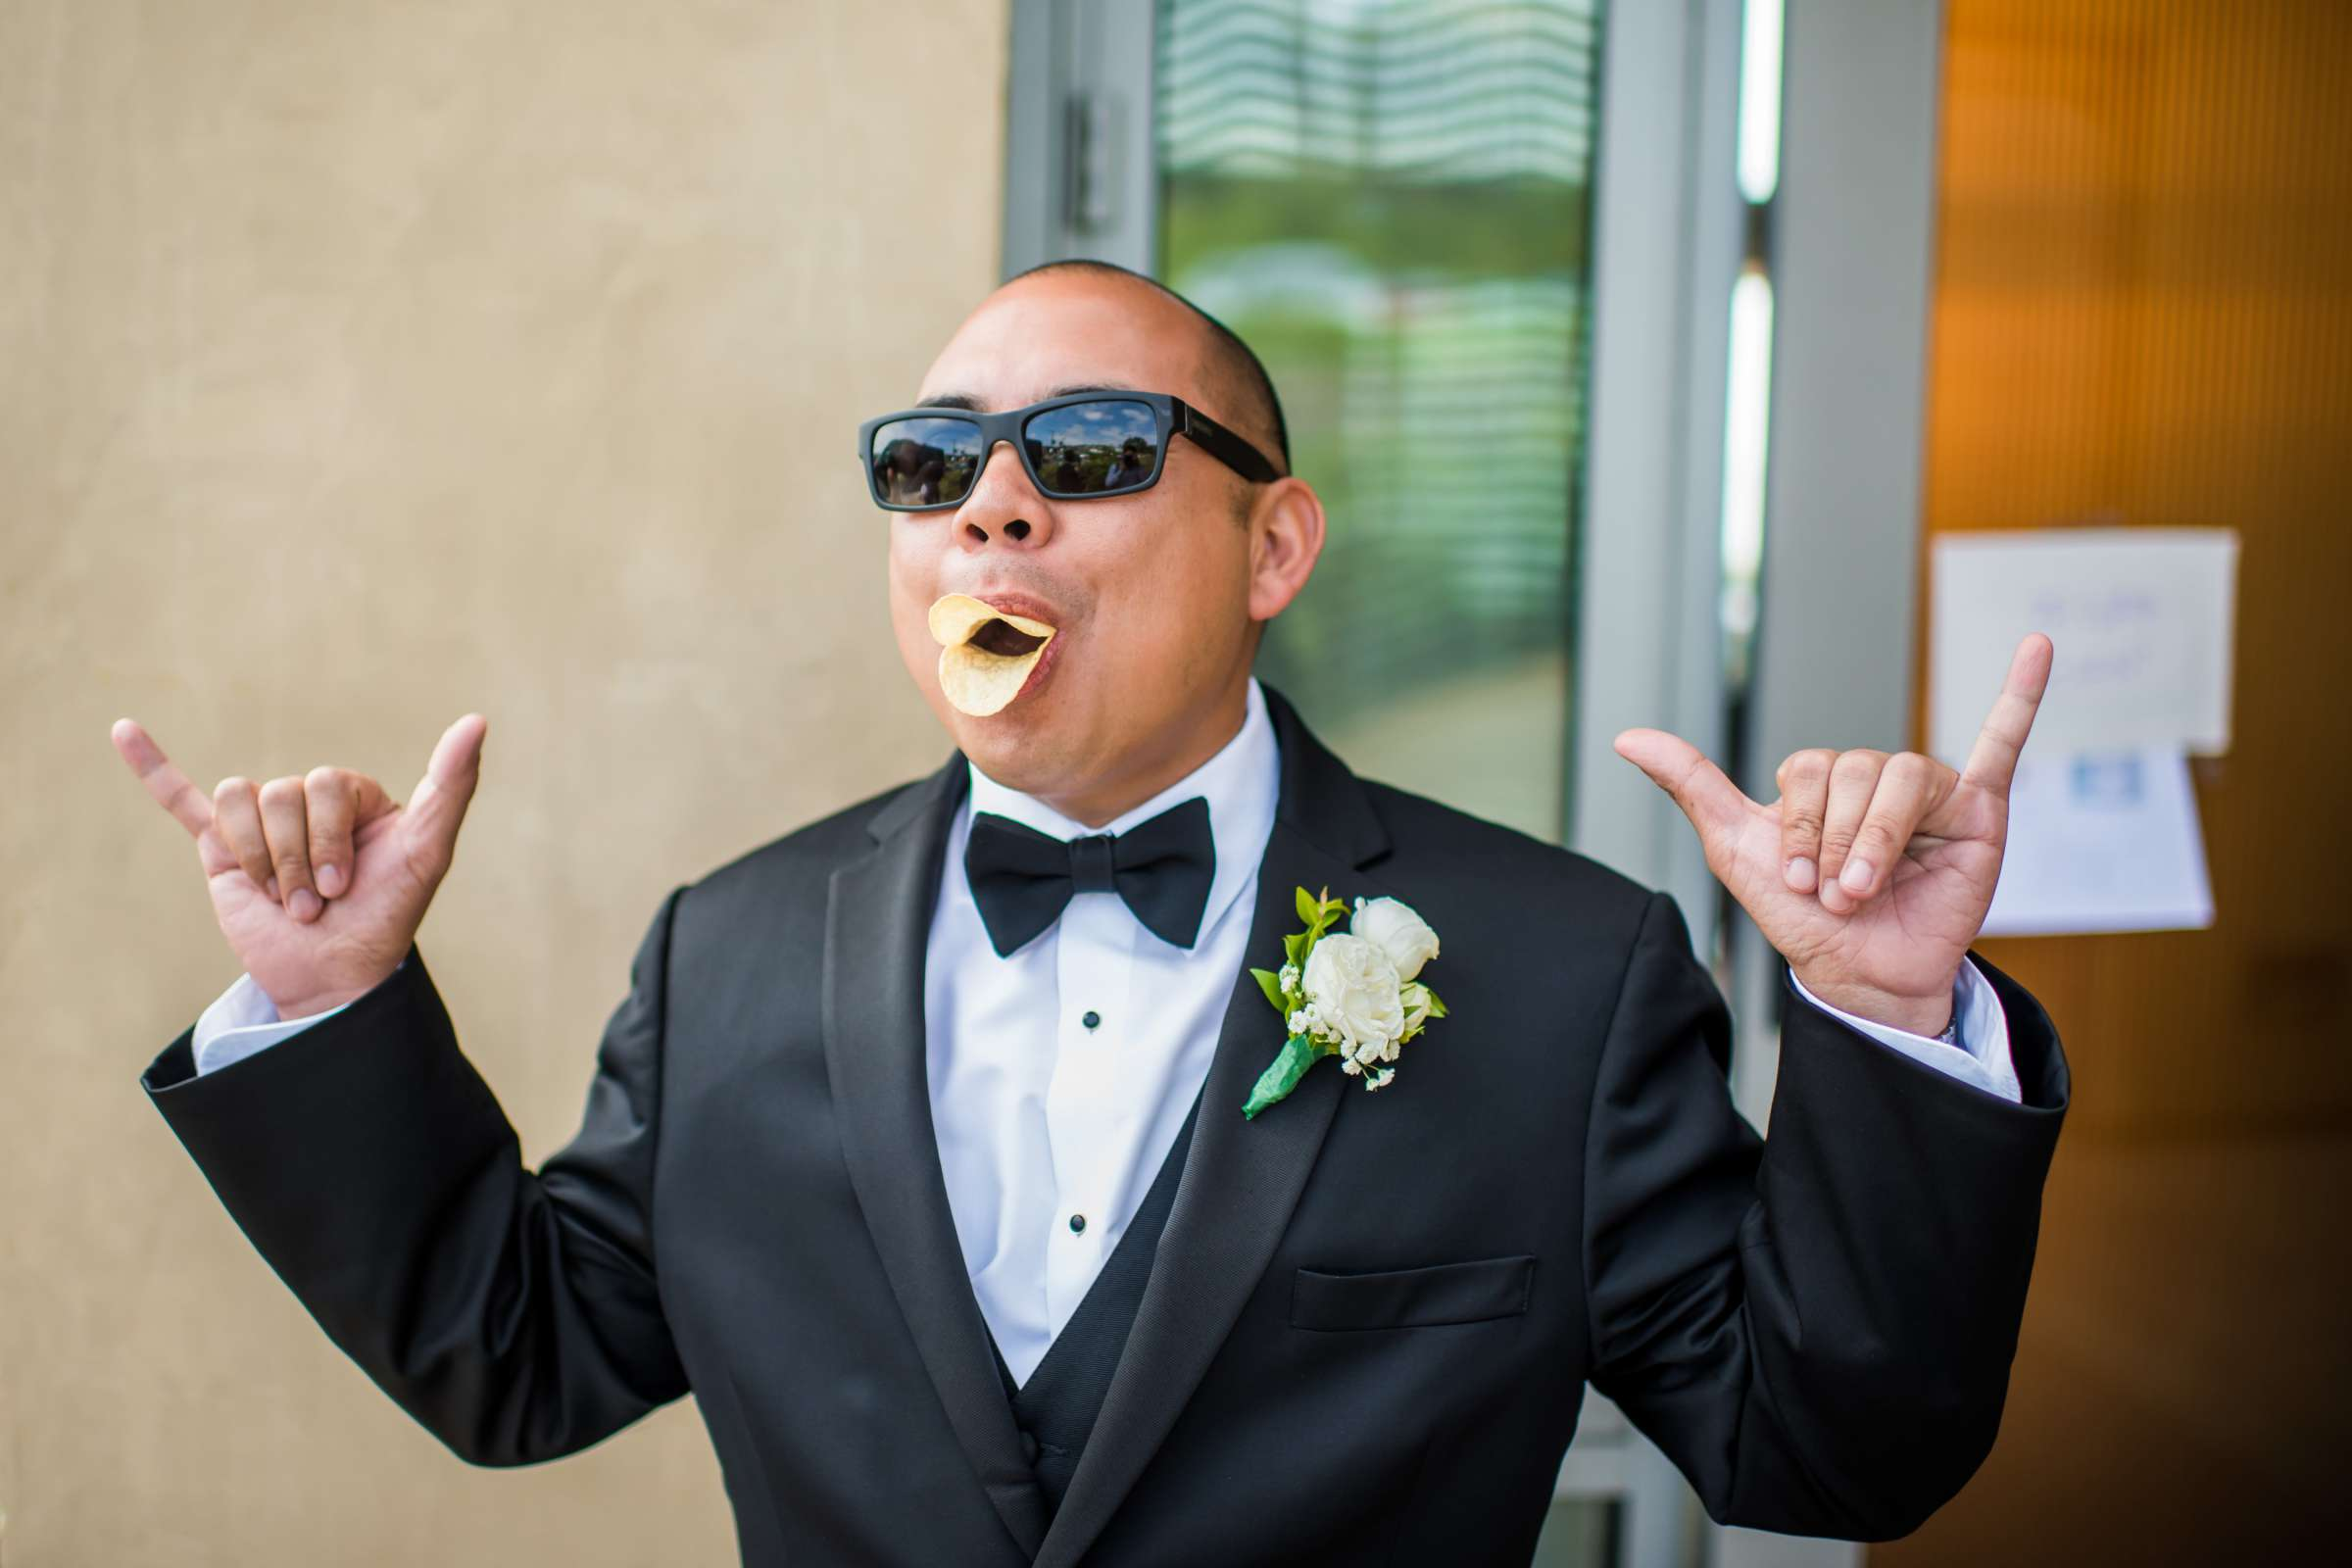 Scripps Seaside Forum Wedding coordinated by Lavish Weddings, Cindy and Justin Wedding Photo #381808 by True Photography